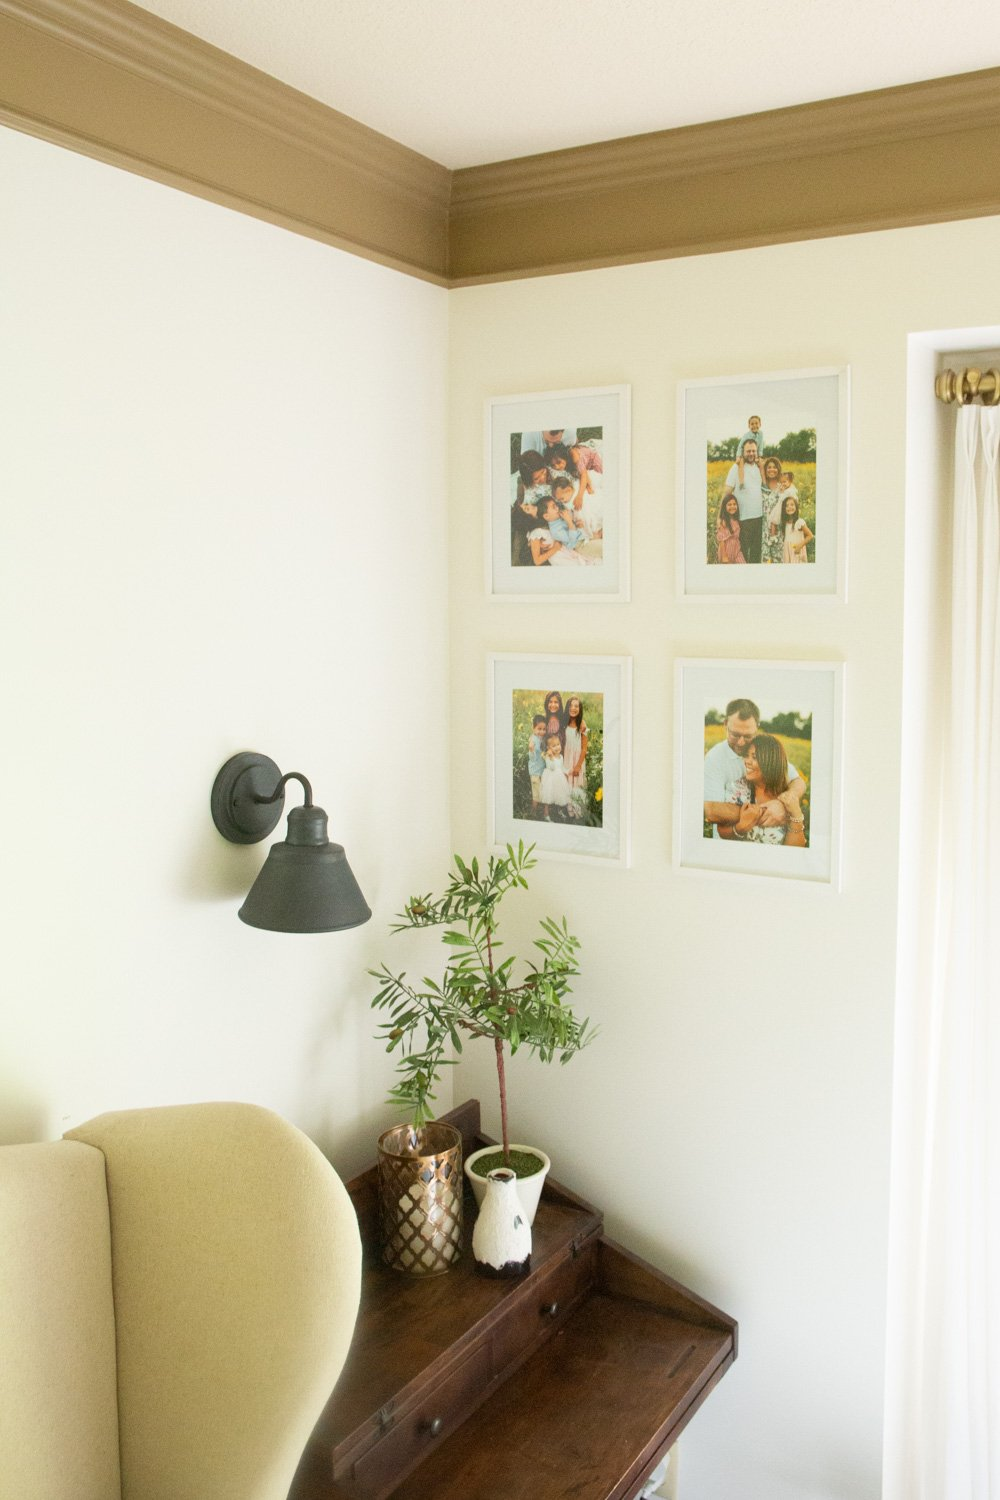 diy sconce lighting no electricity or hardwire installation required